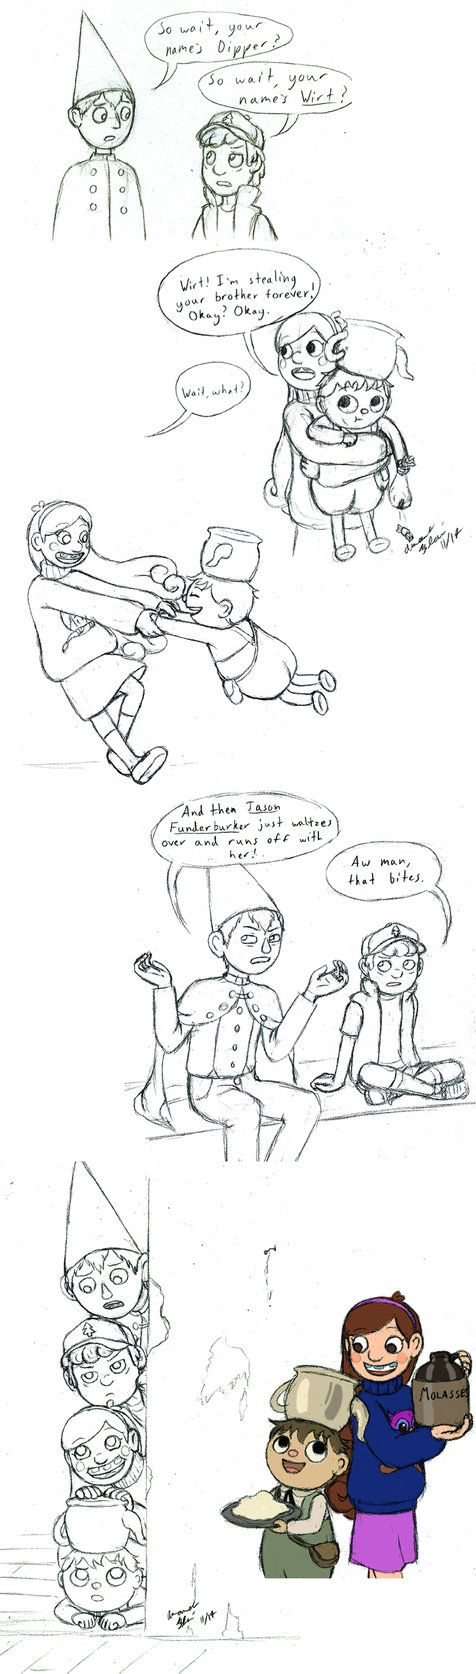 Hey, look! More Over the Garden Wall/Gravity Falls crossover! What can I say? It's pretty much perfect.